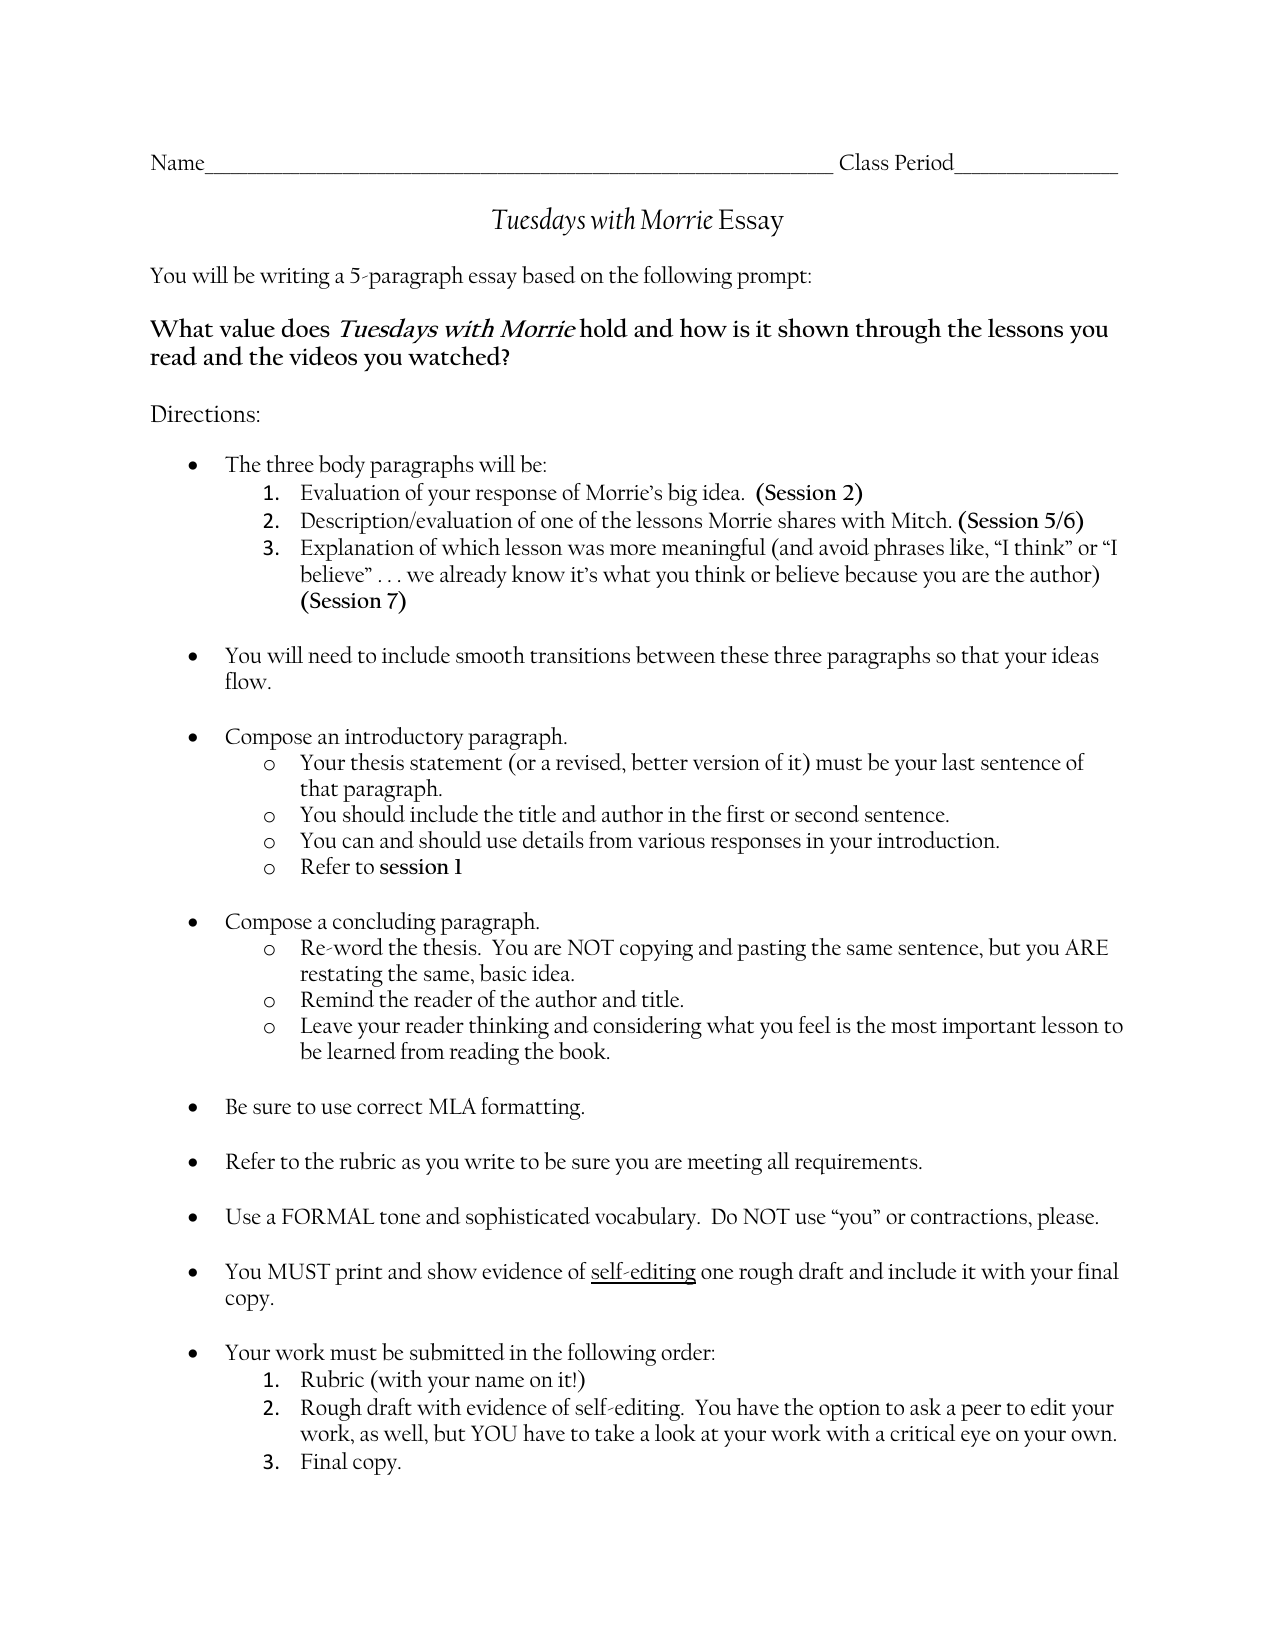 My Life Essay  Essay On Human Rights also Essay Energy Conservation Tuesdays With Morrie Statement Of Purpose Sample Essays